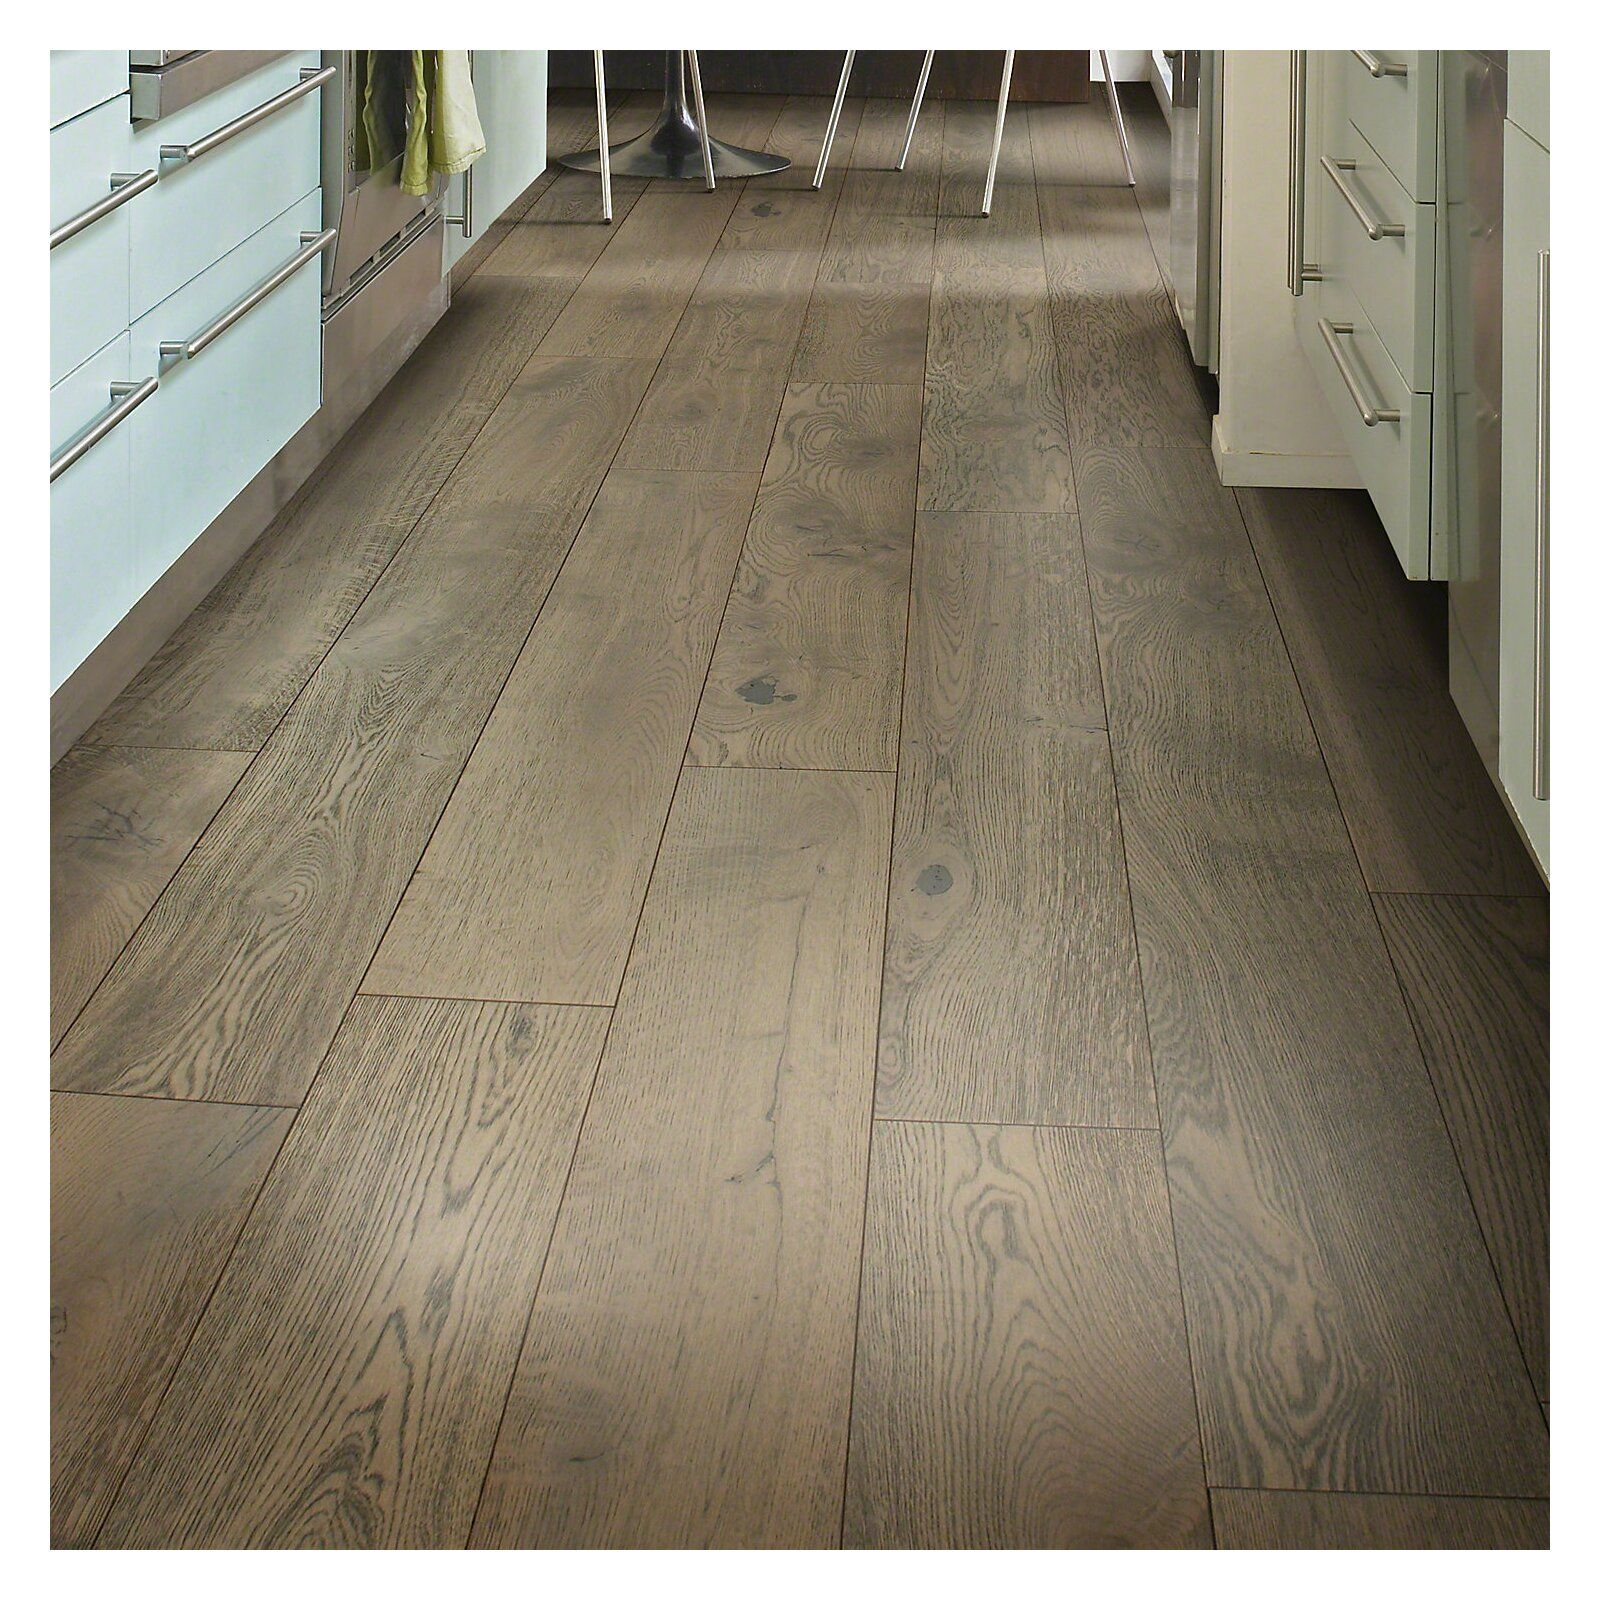 Shaw Floors Scottsmoor Oak 9 16 Thick X 7 1 2 Wide Engineered Hardwood Flooring Wayfair Wood Floors Wide Plank Oak Hardwood Flooring Engineered Hardwood